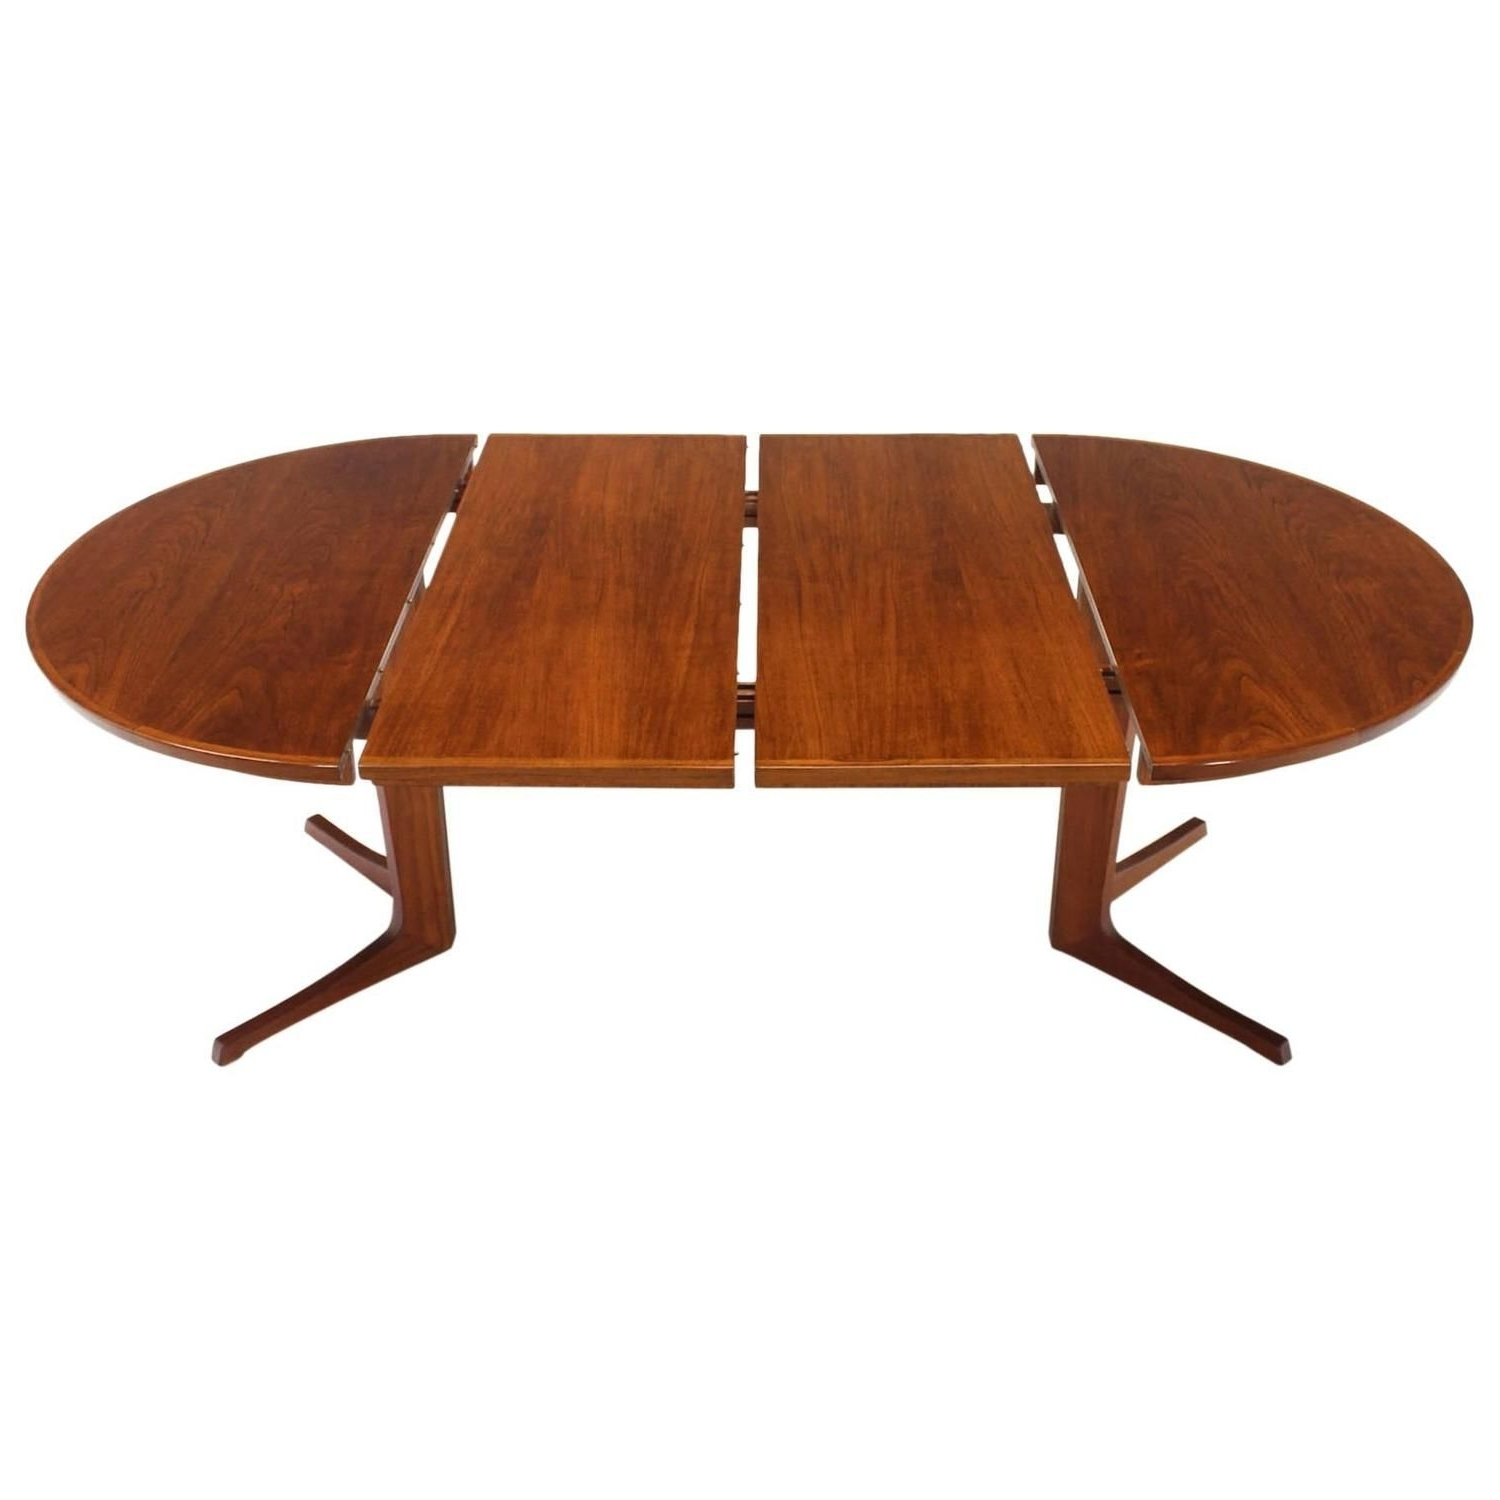 Round Danish Mid Century Modern Teak Dining Table With Two Leaves For Latest Danish Dining Tables (View 21 of 25)